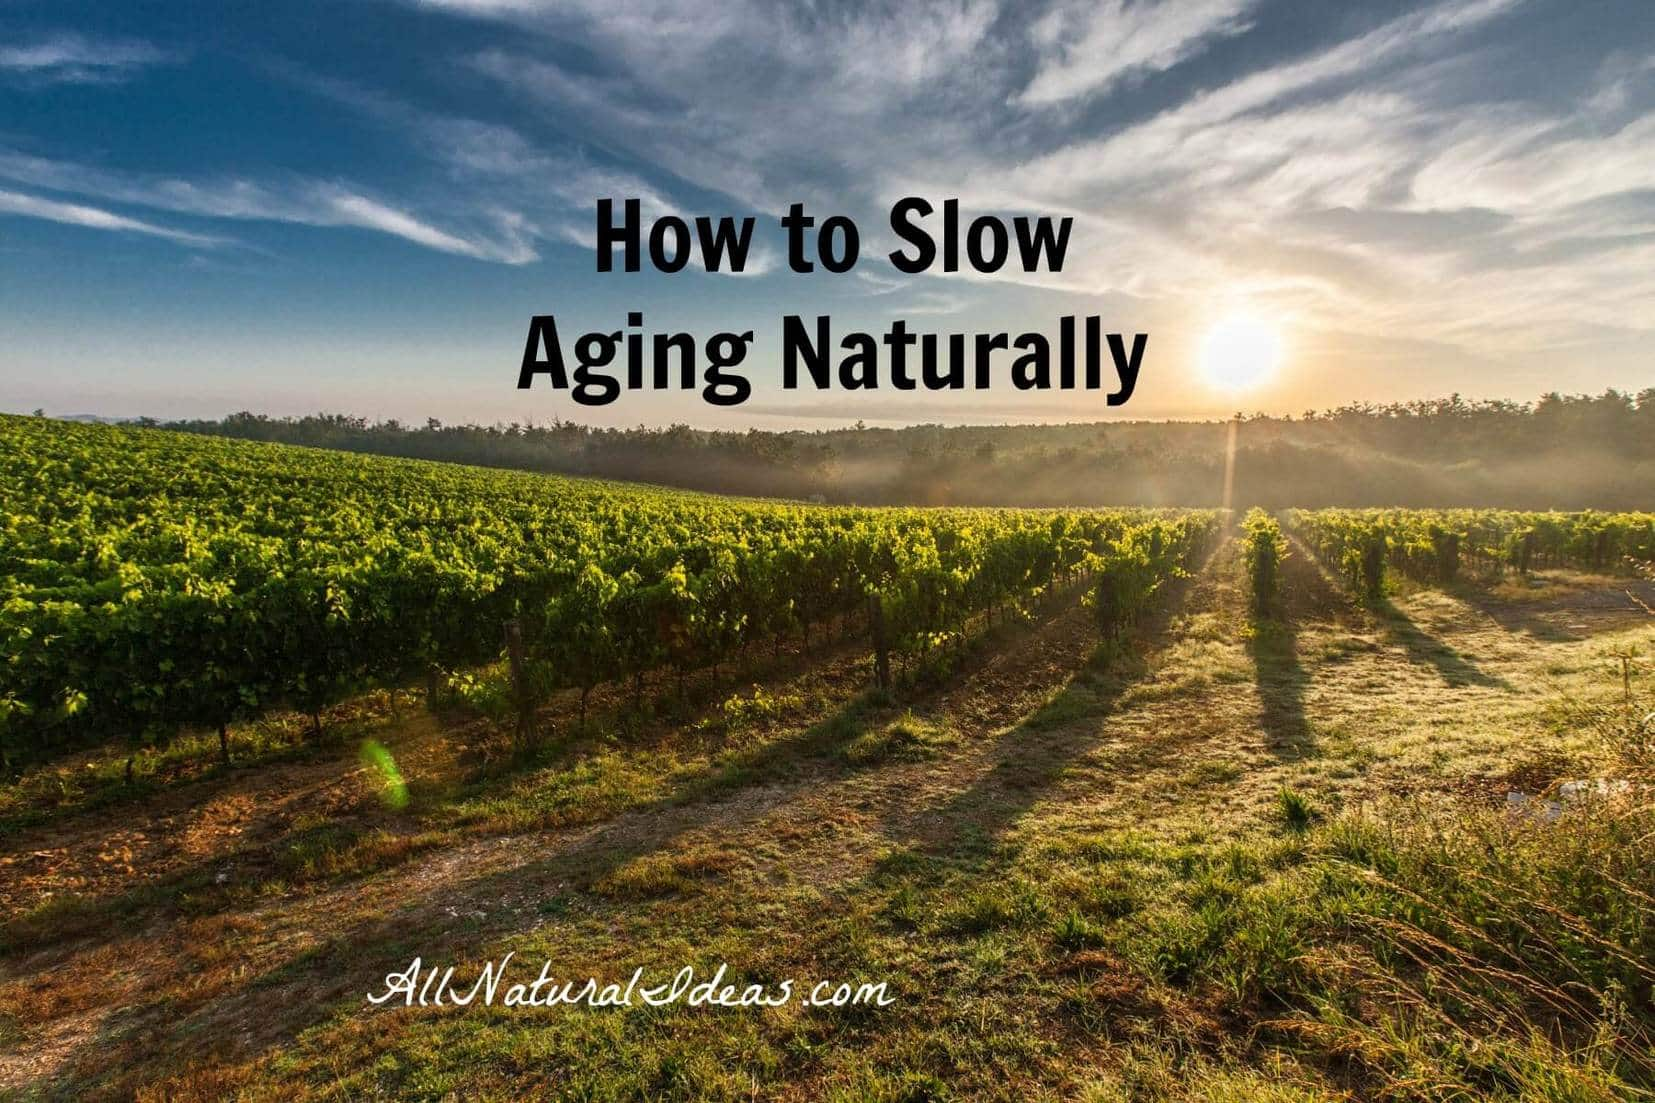 Slow aging naturally